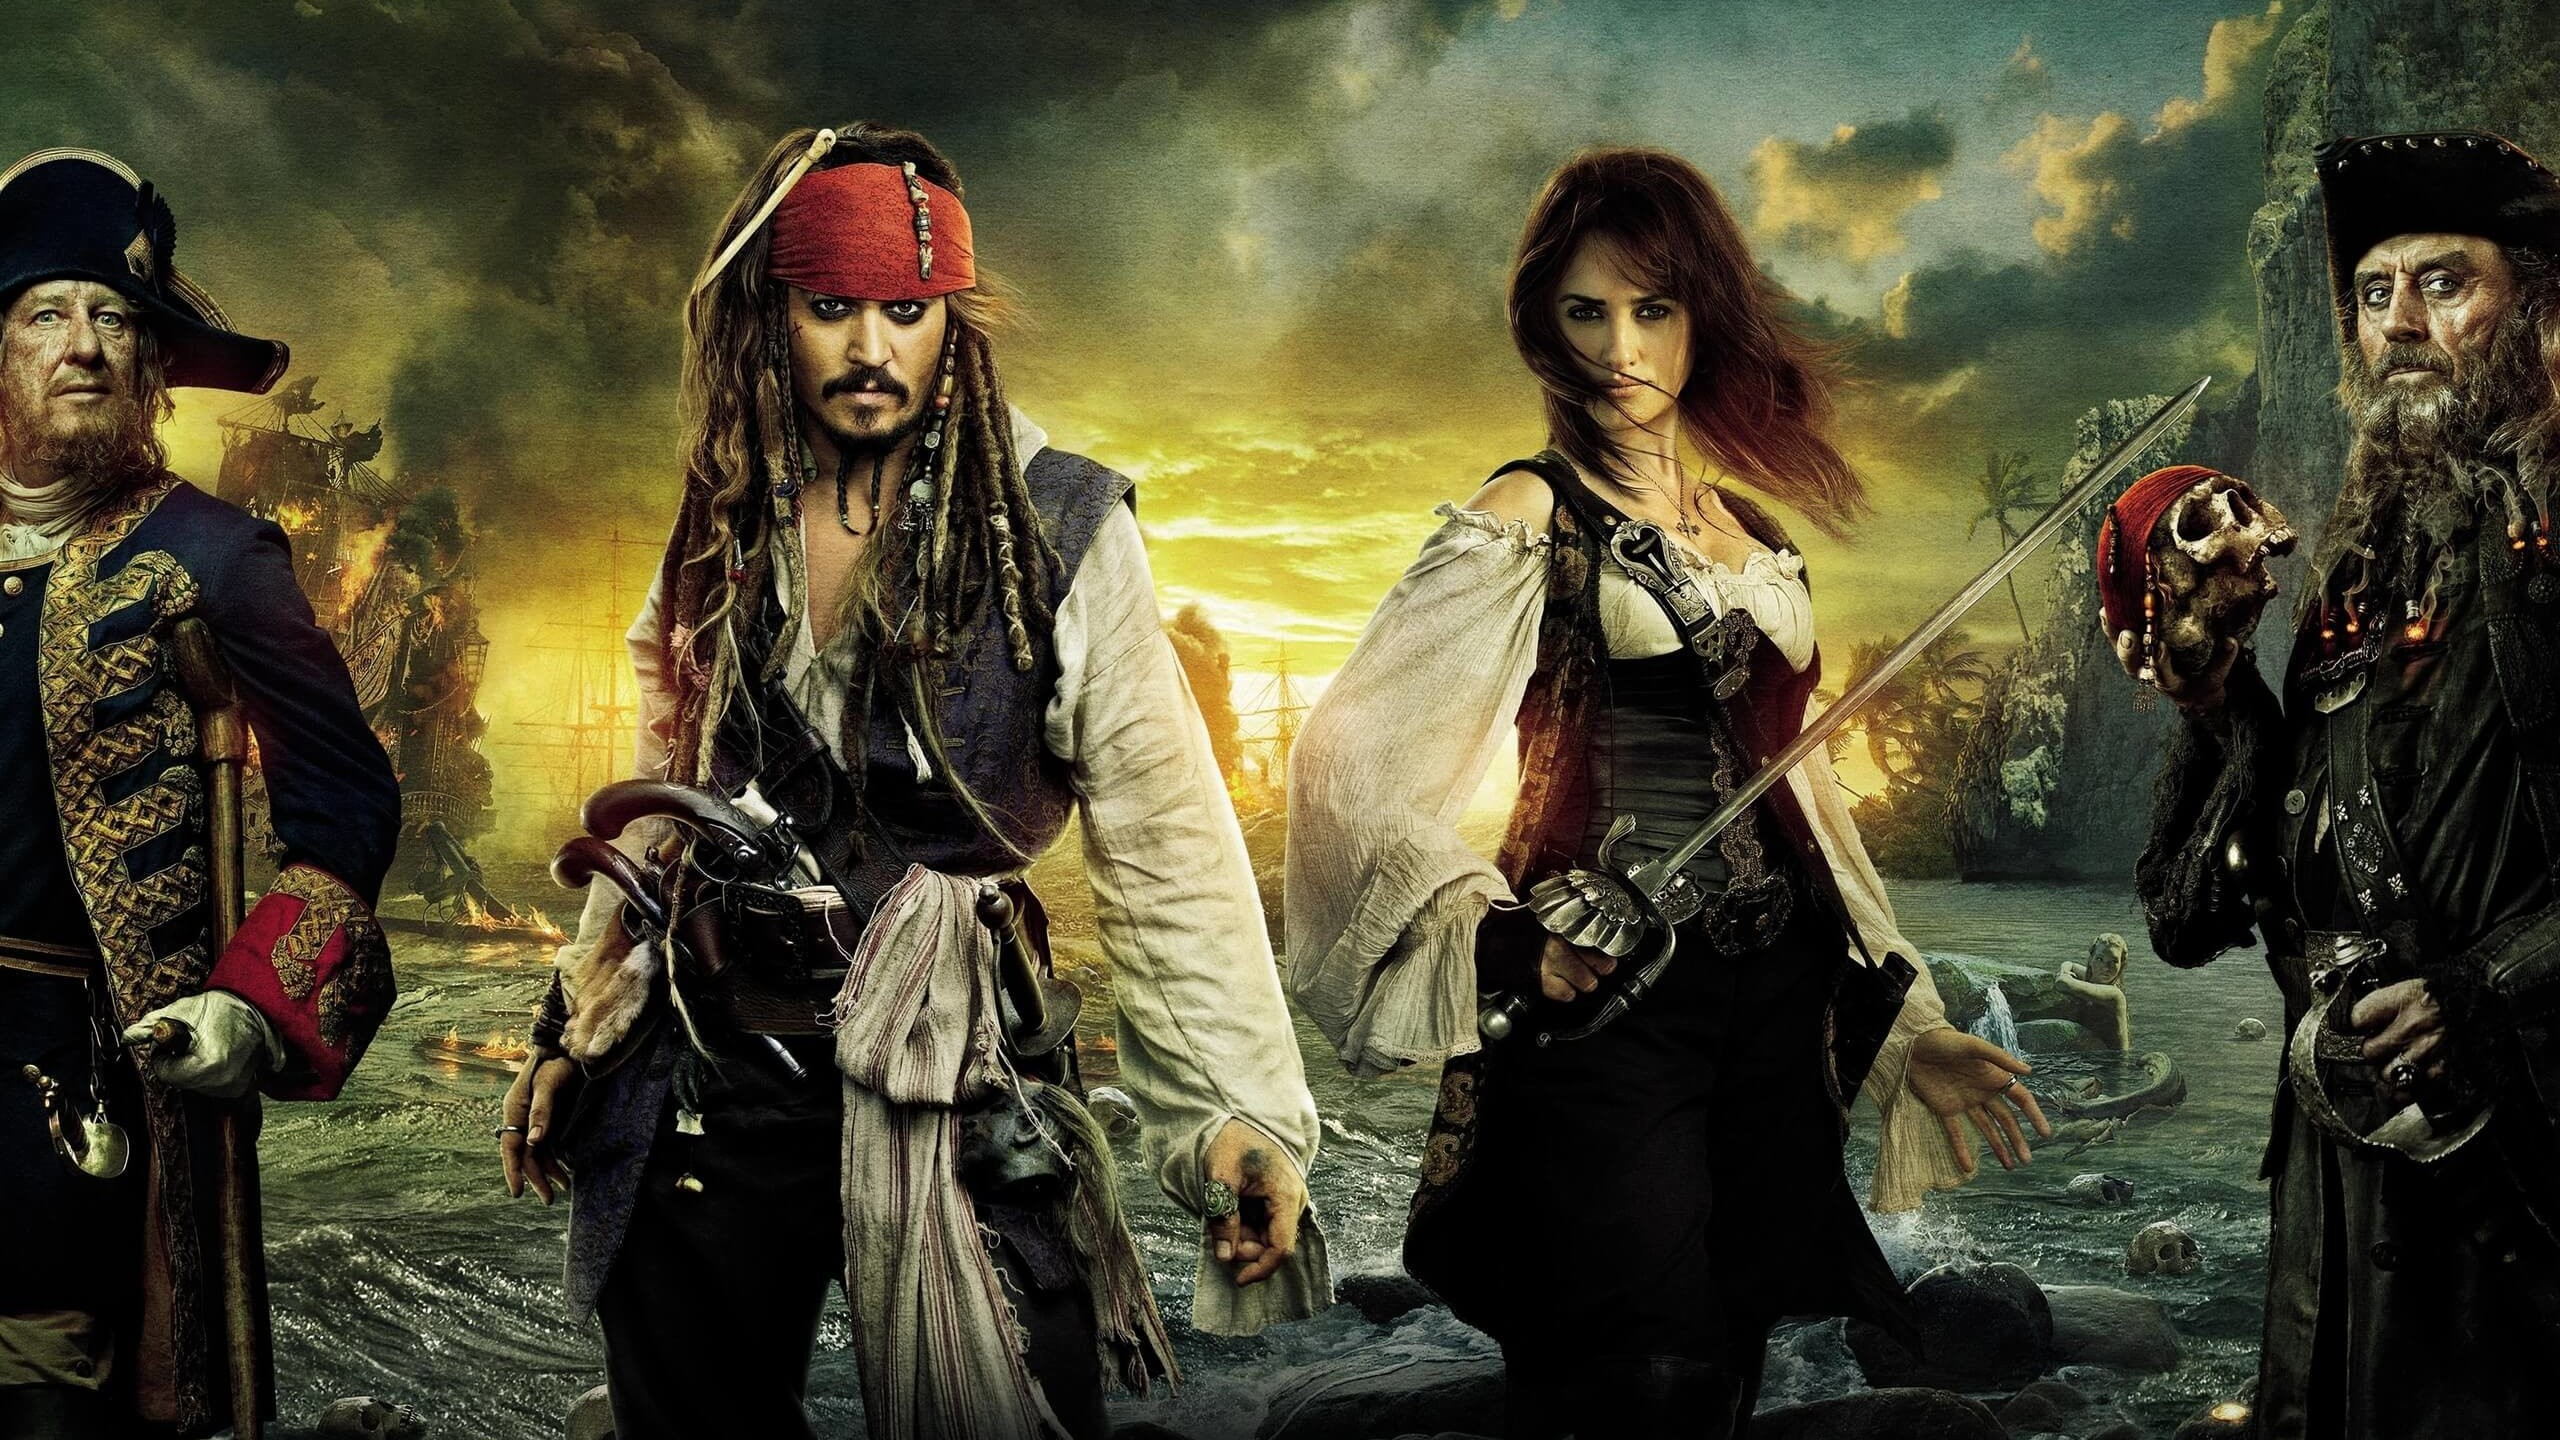 Pirates of the Caribbean: On Stranger Tides Characters Wallpaper for Desktop 2560x1440